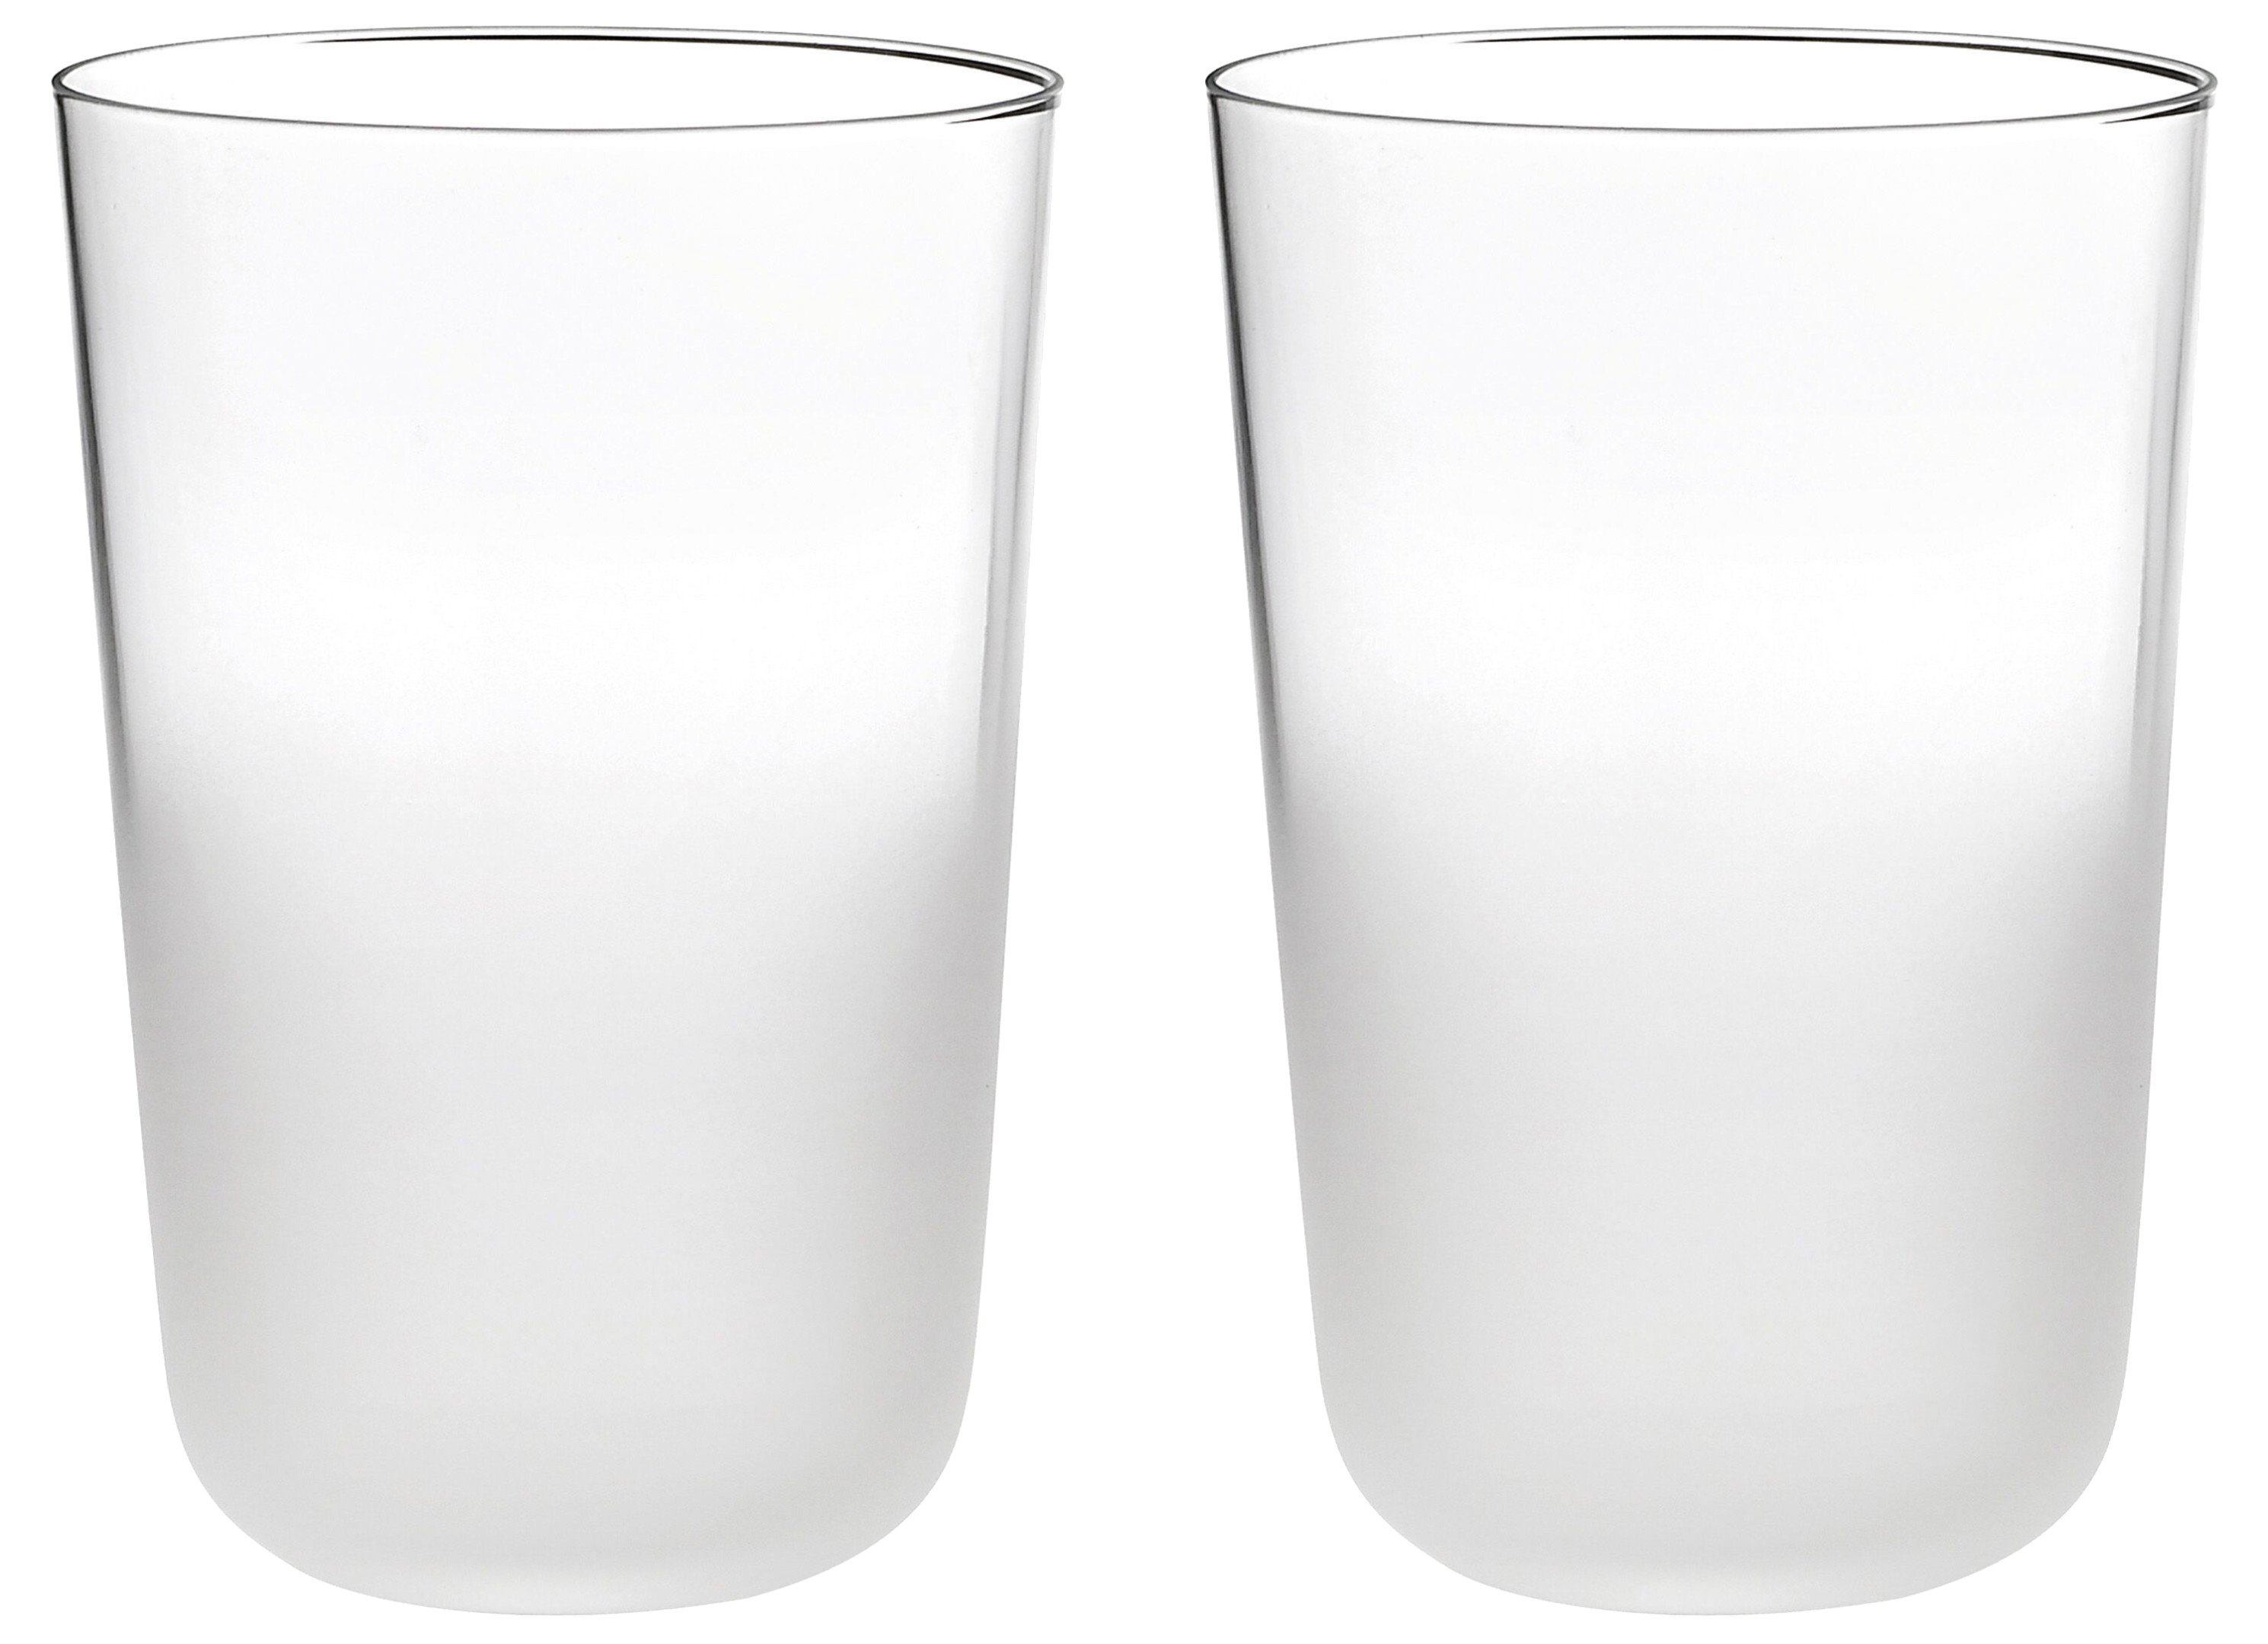 Pair of Frost Glasses no. 2, by Front for Stelton,